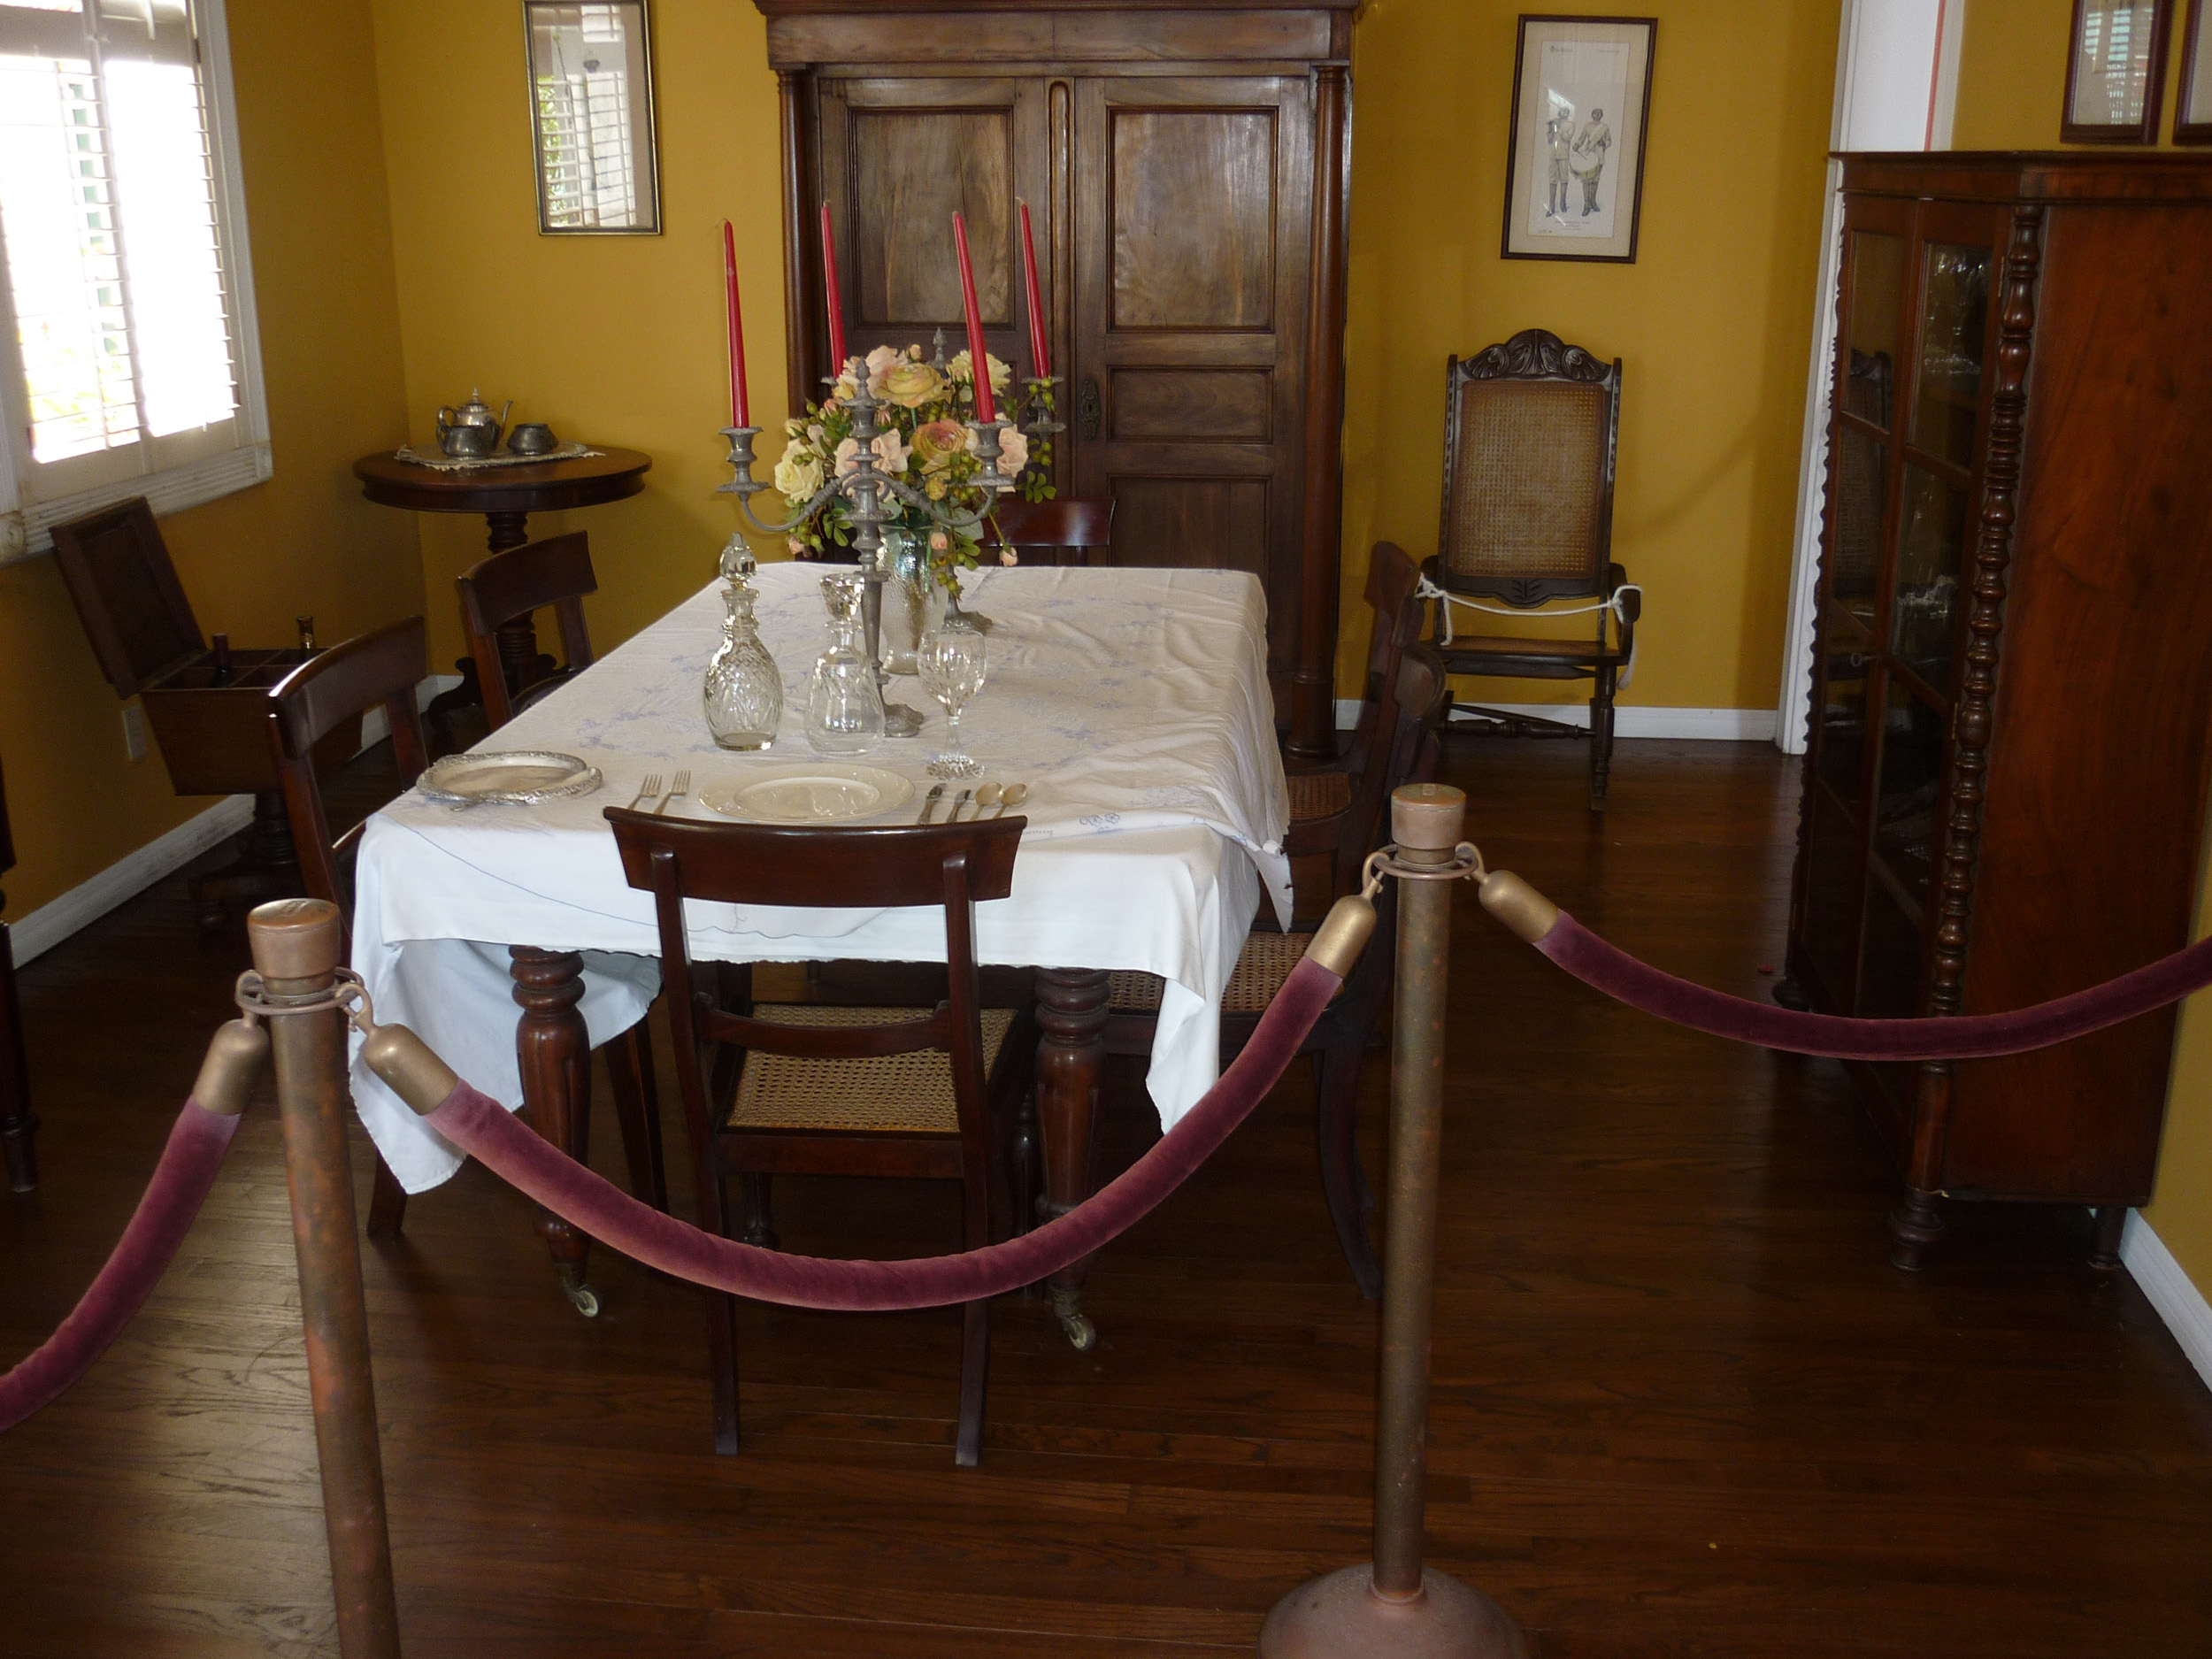 interior of a dining room in a heritage building, st thomas, us virgin islands